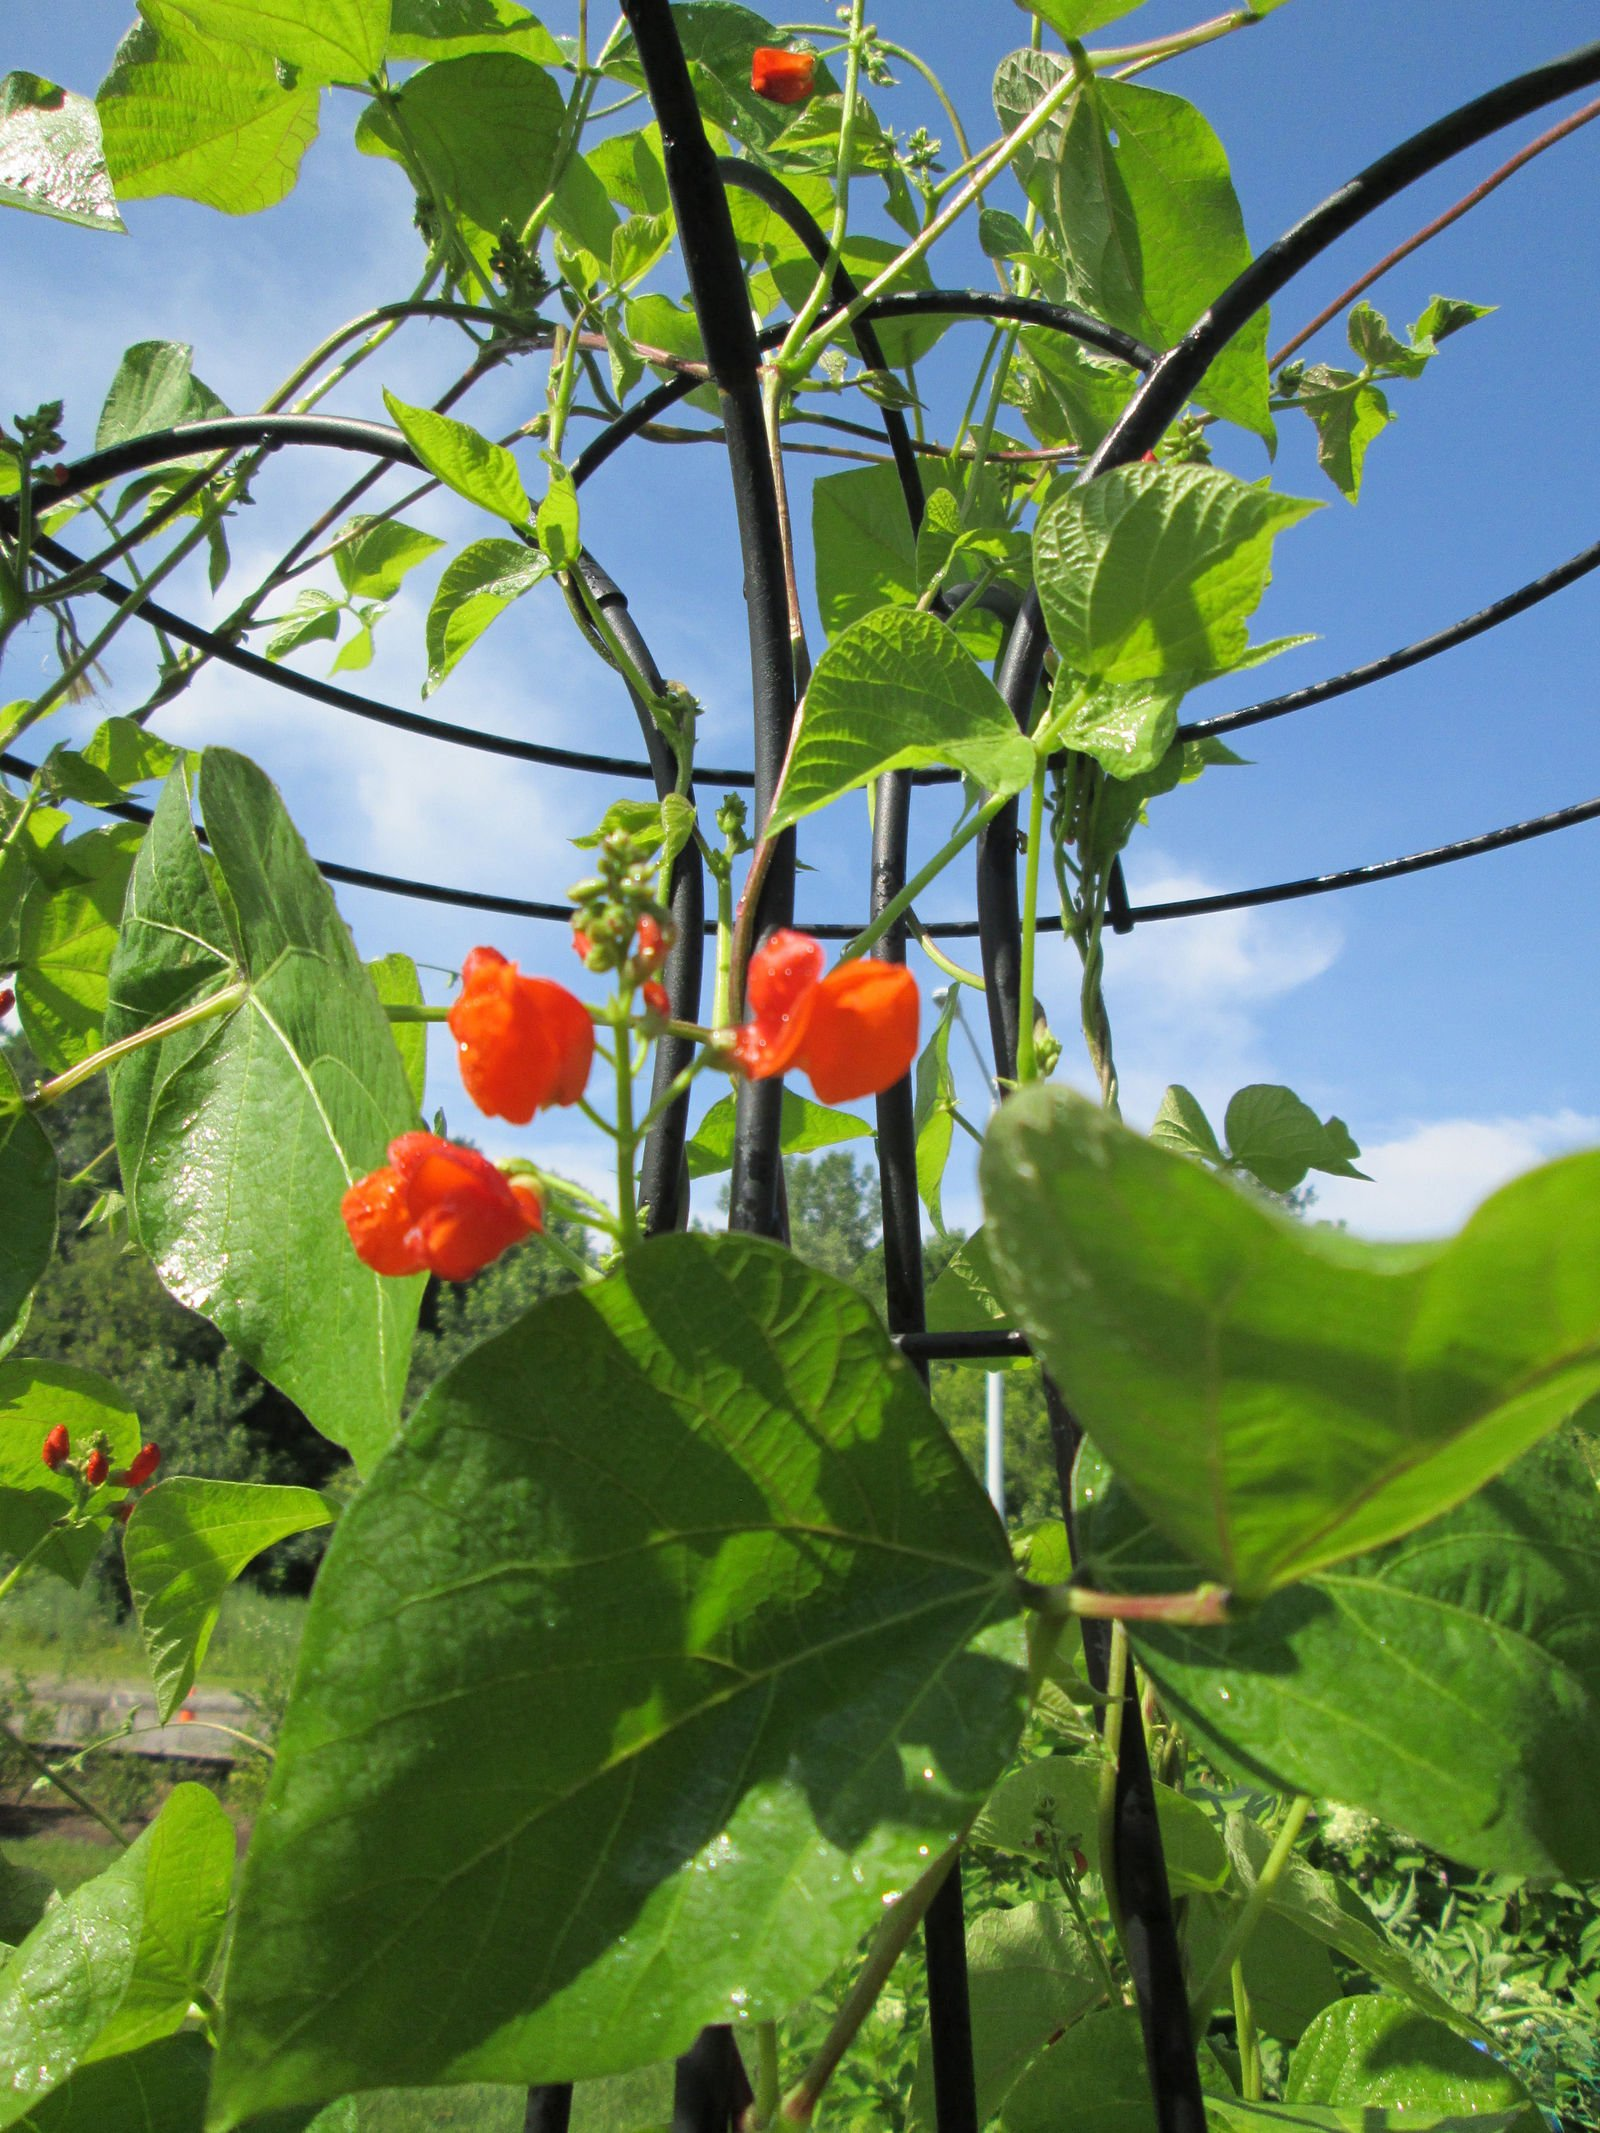 Gardener's Supply Company Essex Trellis, Tall Decorative Flower and/or Vegetable Support